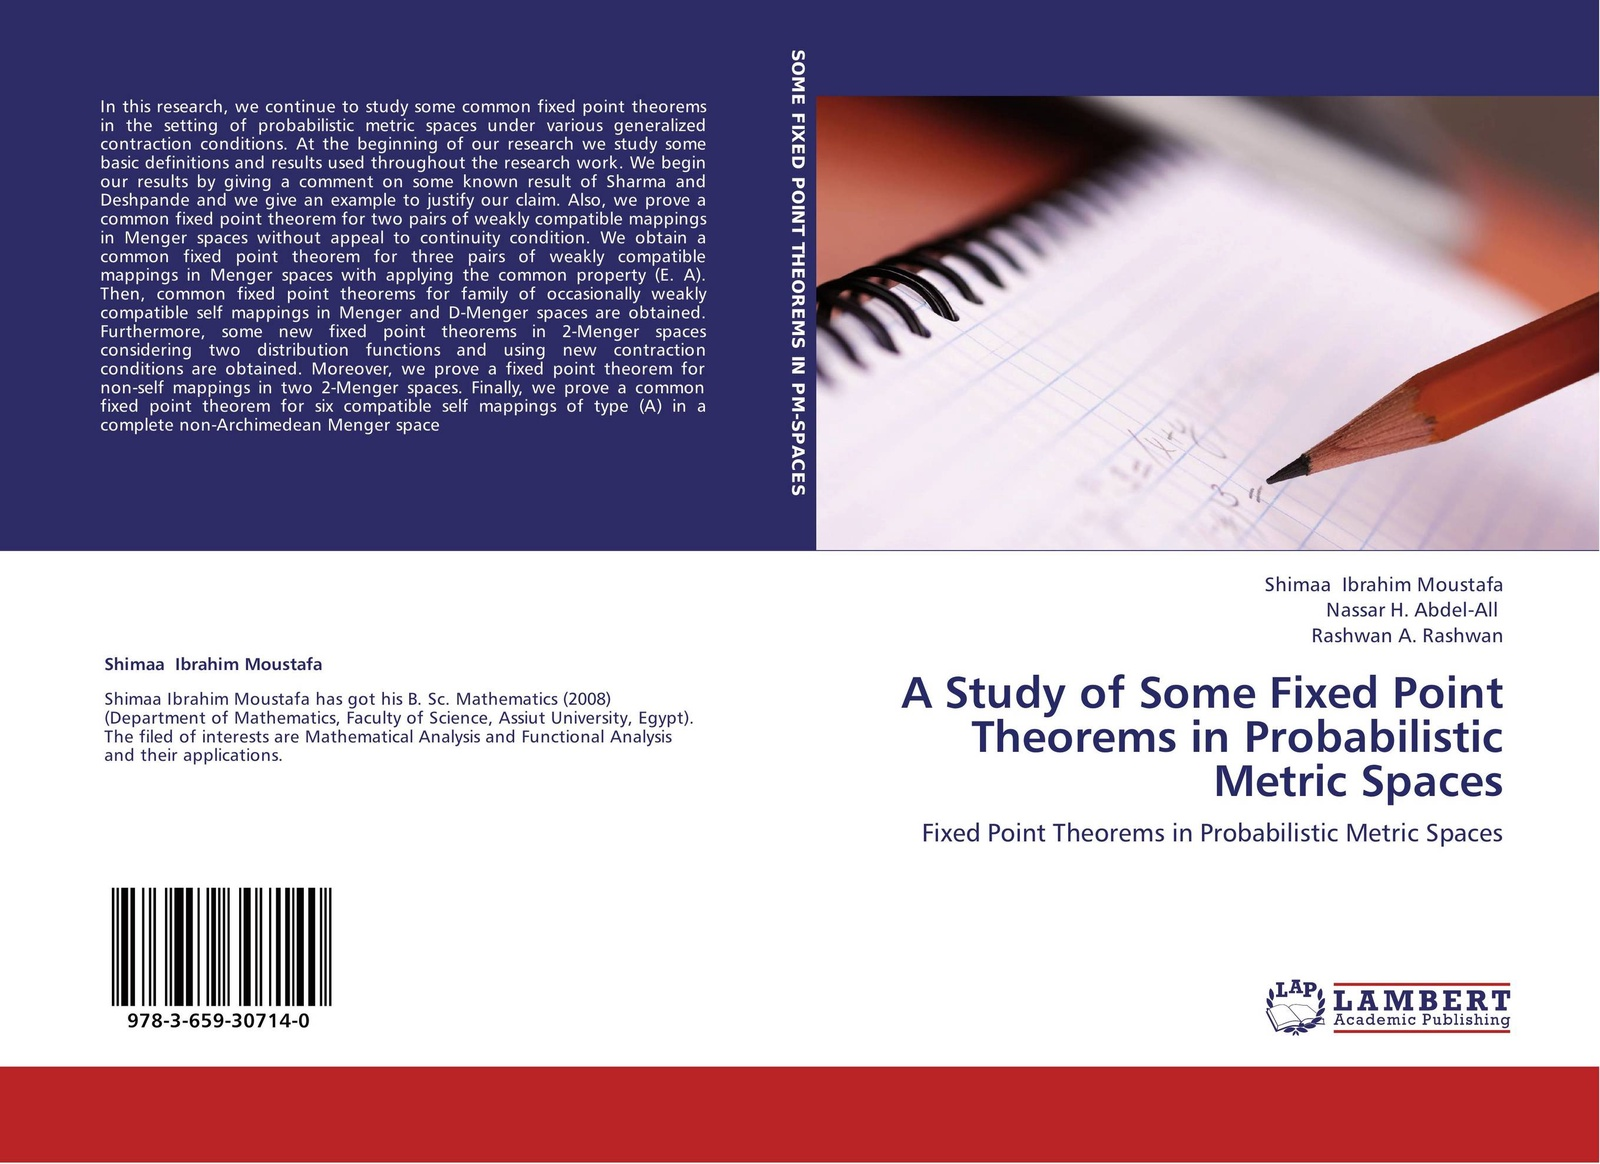 Shimaa Ibrahim Moustafa,Nassar H. Abdel-All and Rashwan A. Rashwan A Study of Some Fixed Point Theorems in Probabilistic Metric Spaces цены